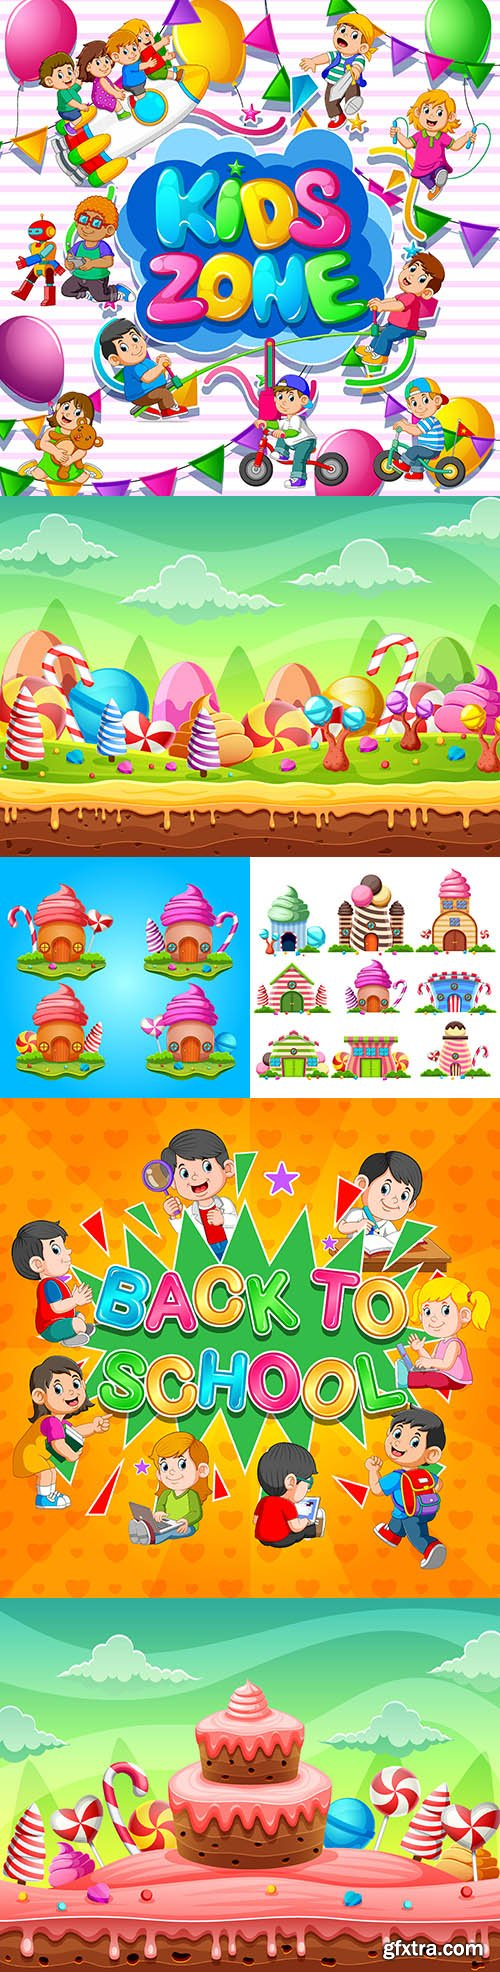 Kids zone for children and fabulous world illustration